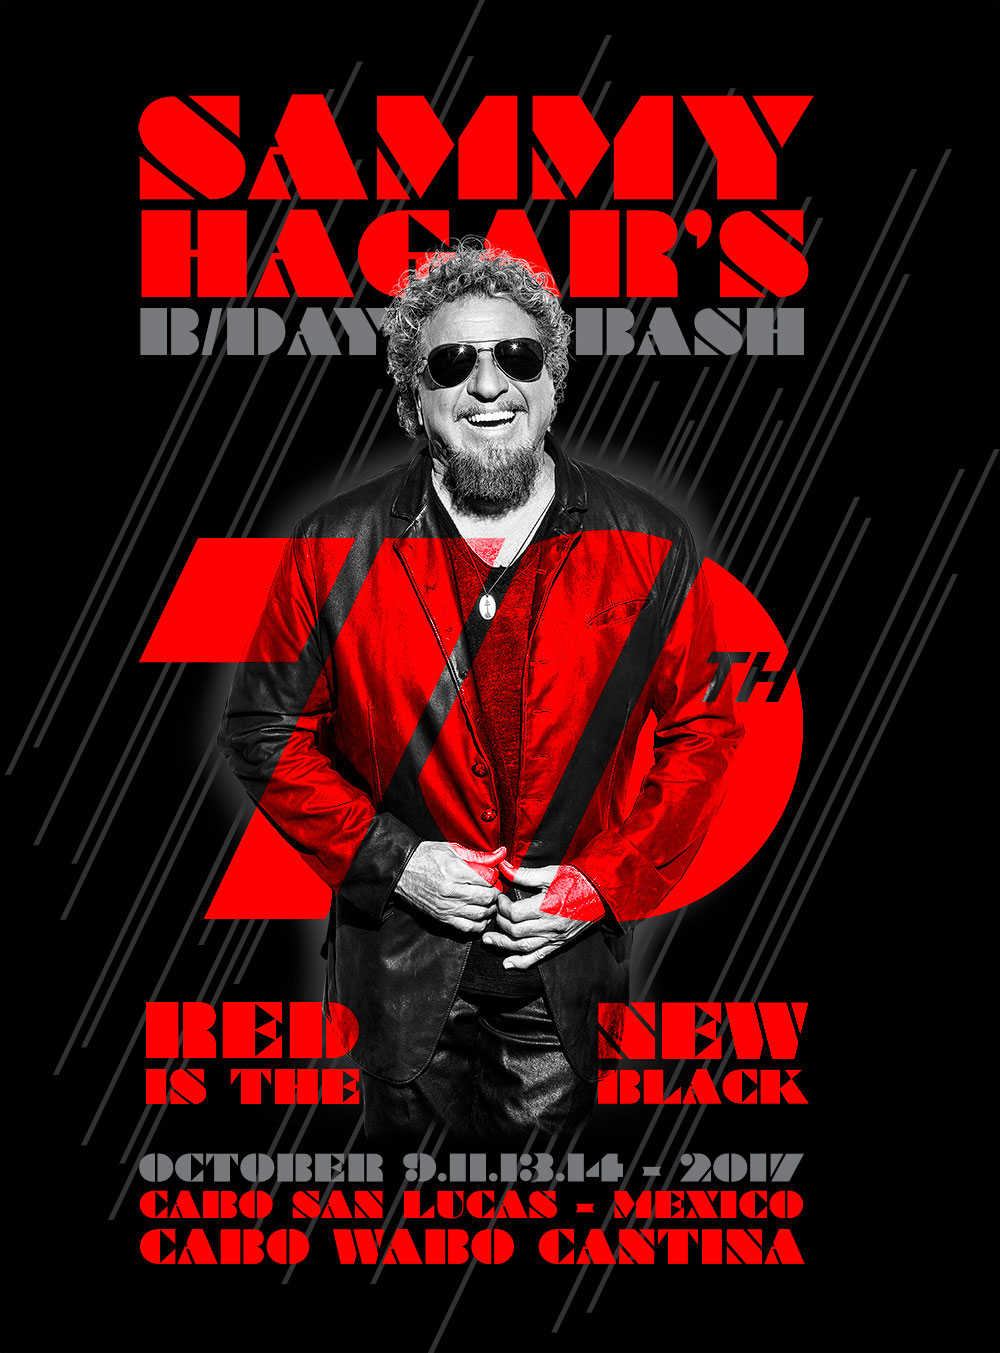 SAMMY HAGAR'S 70TH BDAY BASH - RED IS THE NEW BLACK